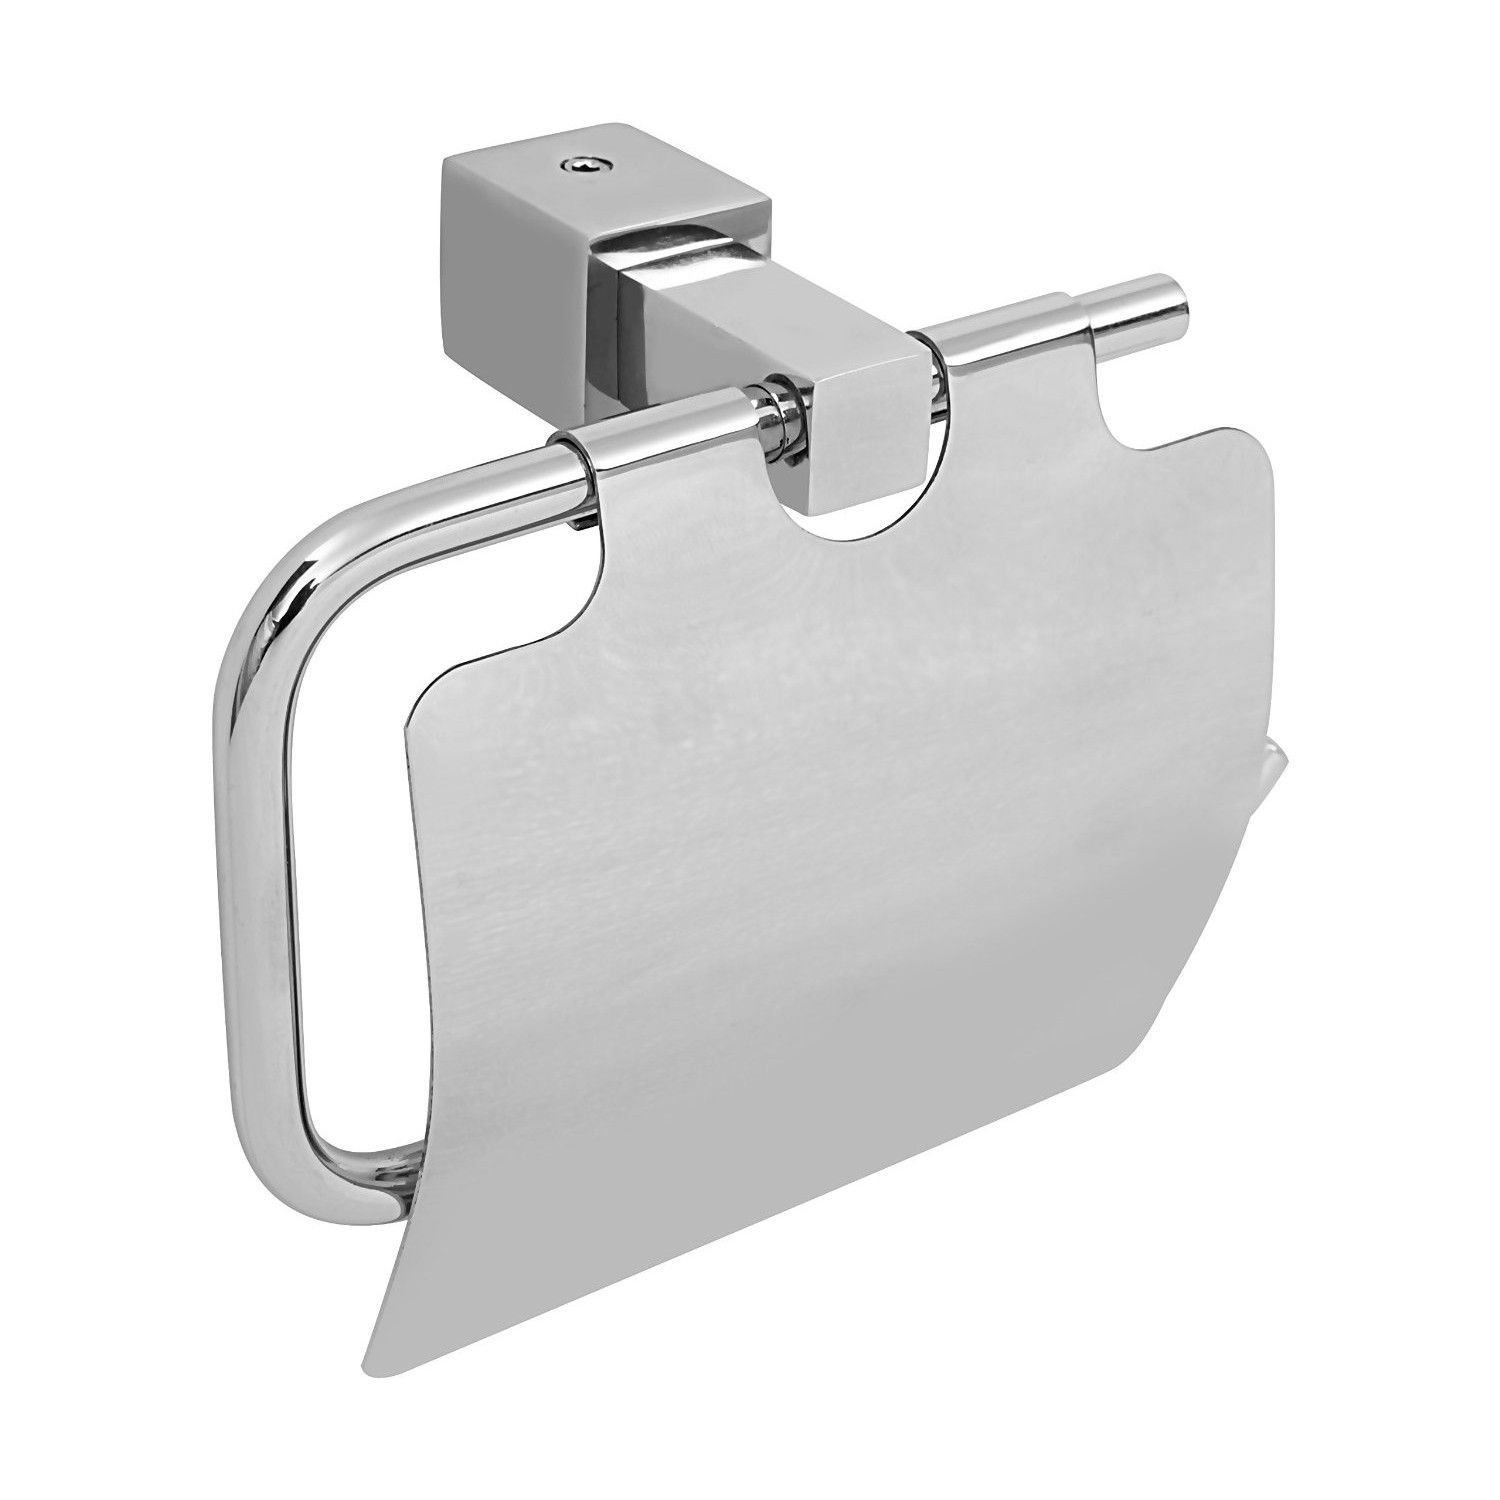 Amity Bathroom Toilet Tissue Paper Holder With Lid Desire